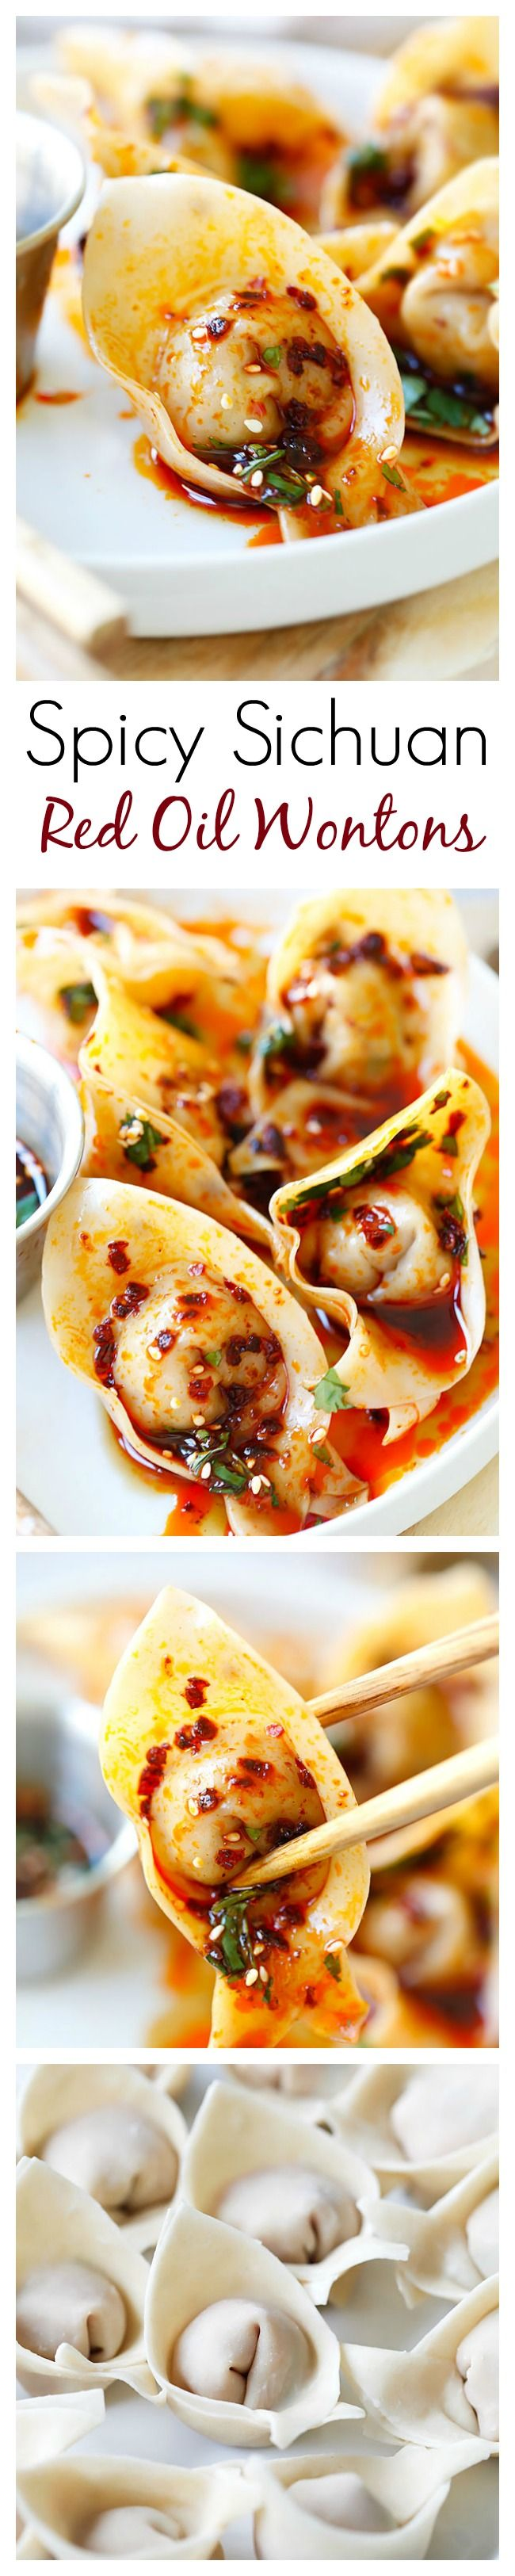 Sichuan Red Oil Wontons – delicious and mouthwatering spicy wontons in Sichuan red oil and black vinegar sauce. Easy recipe for homemade spicy wontons   rasamalaysia.com